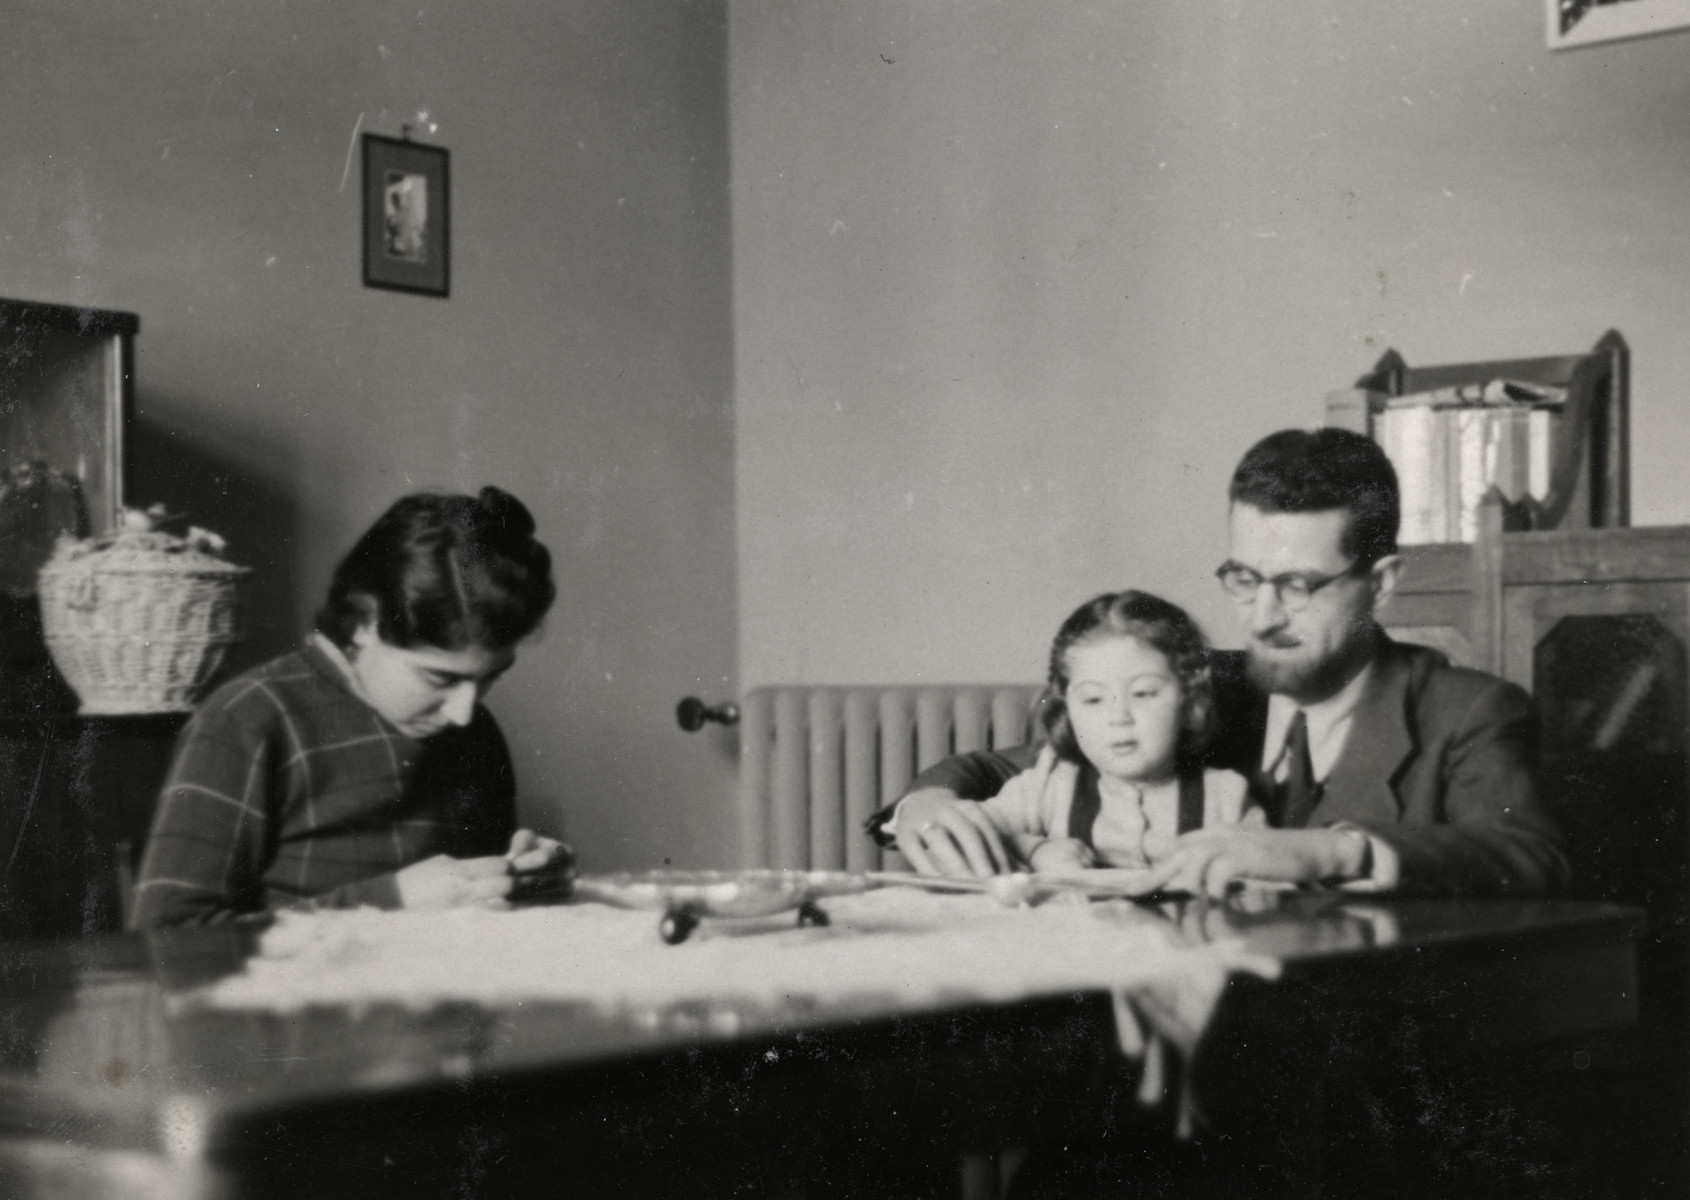 Shaul, Ada and Leah Nissim sit in the dining room of their home in Padua.